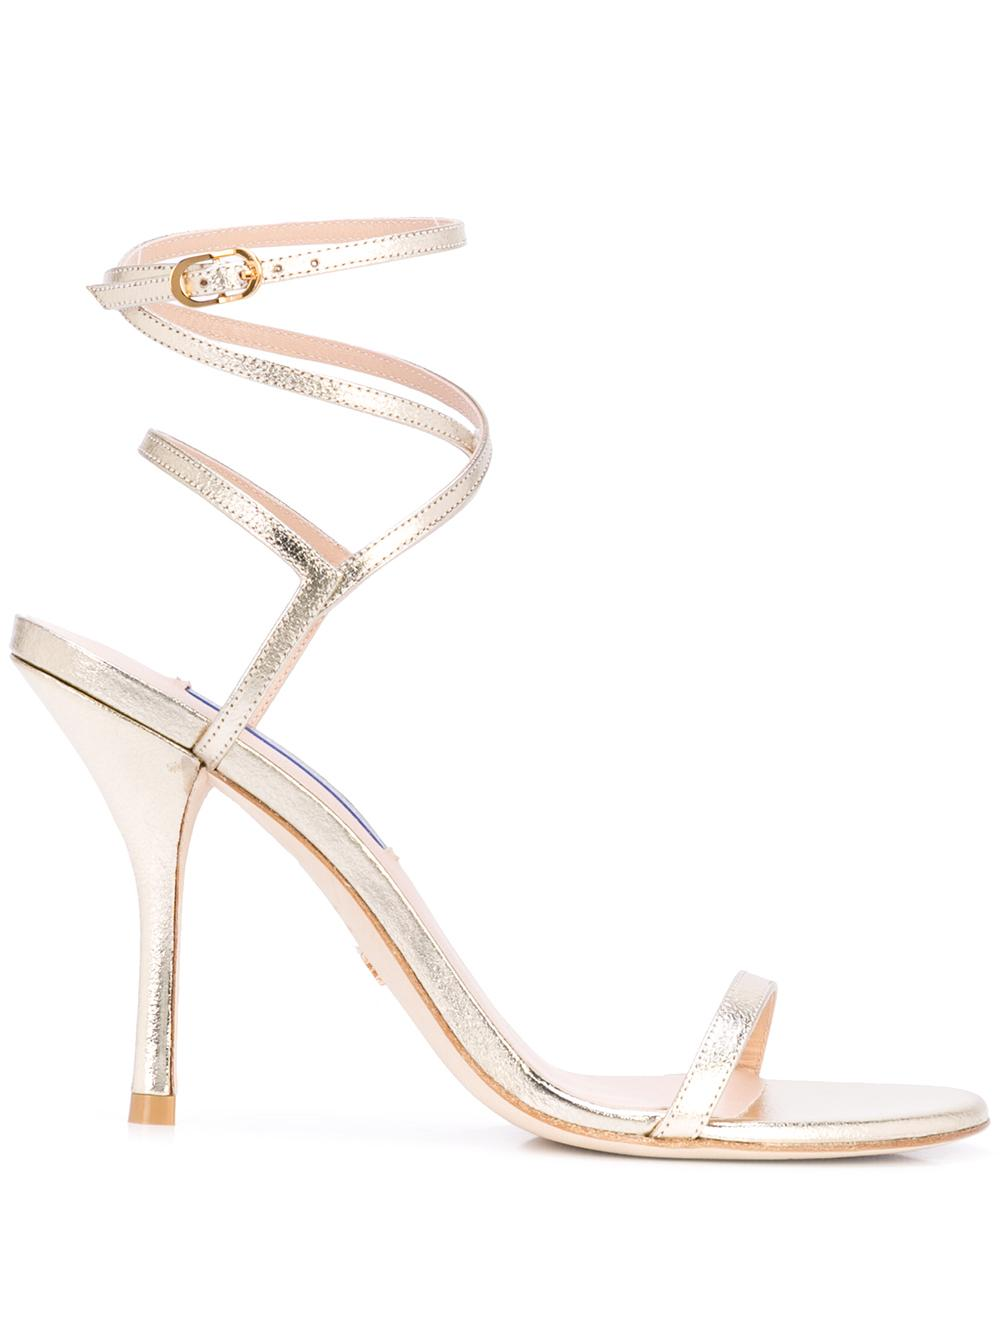 Lame 95mm Strappy Sandal